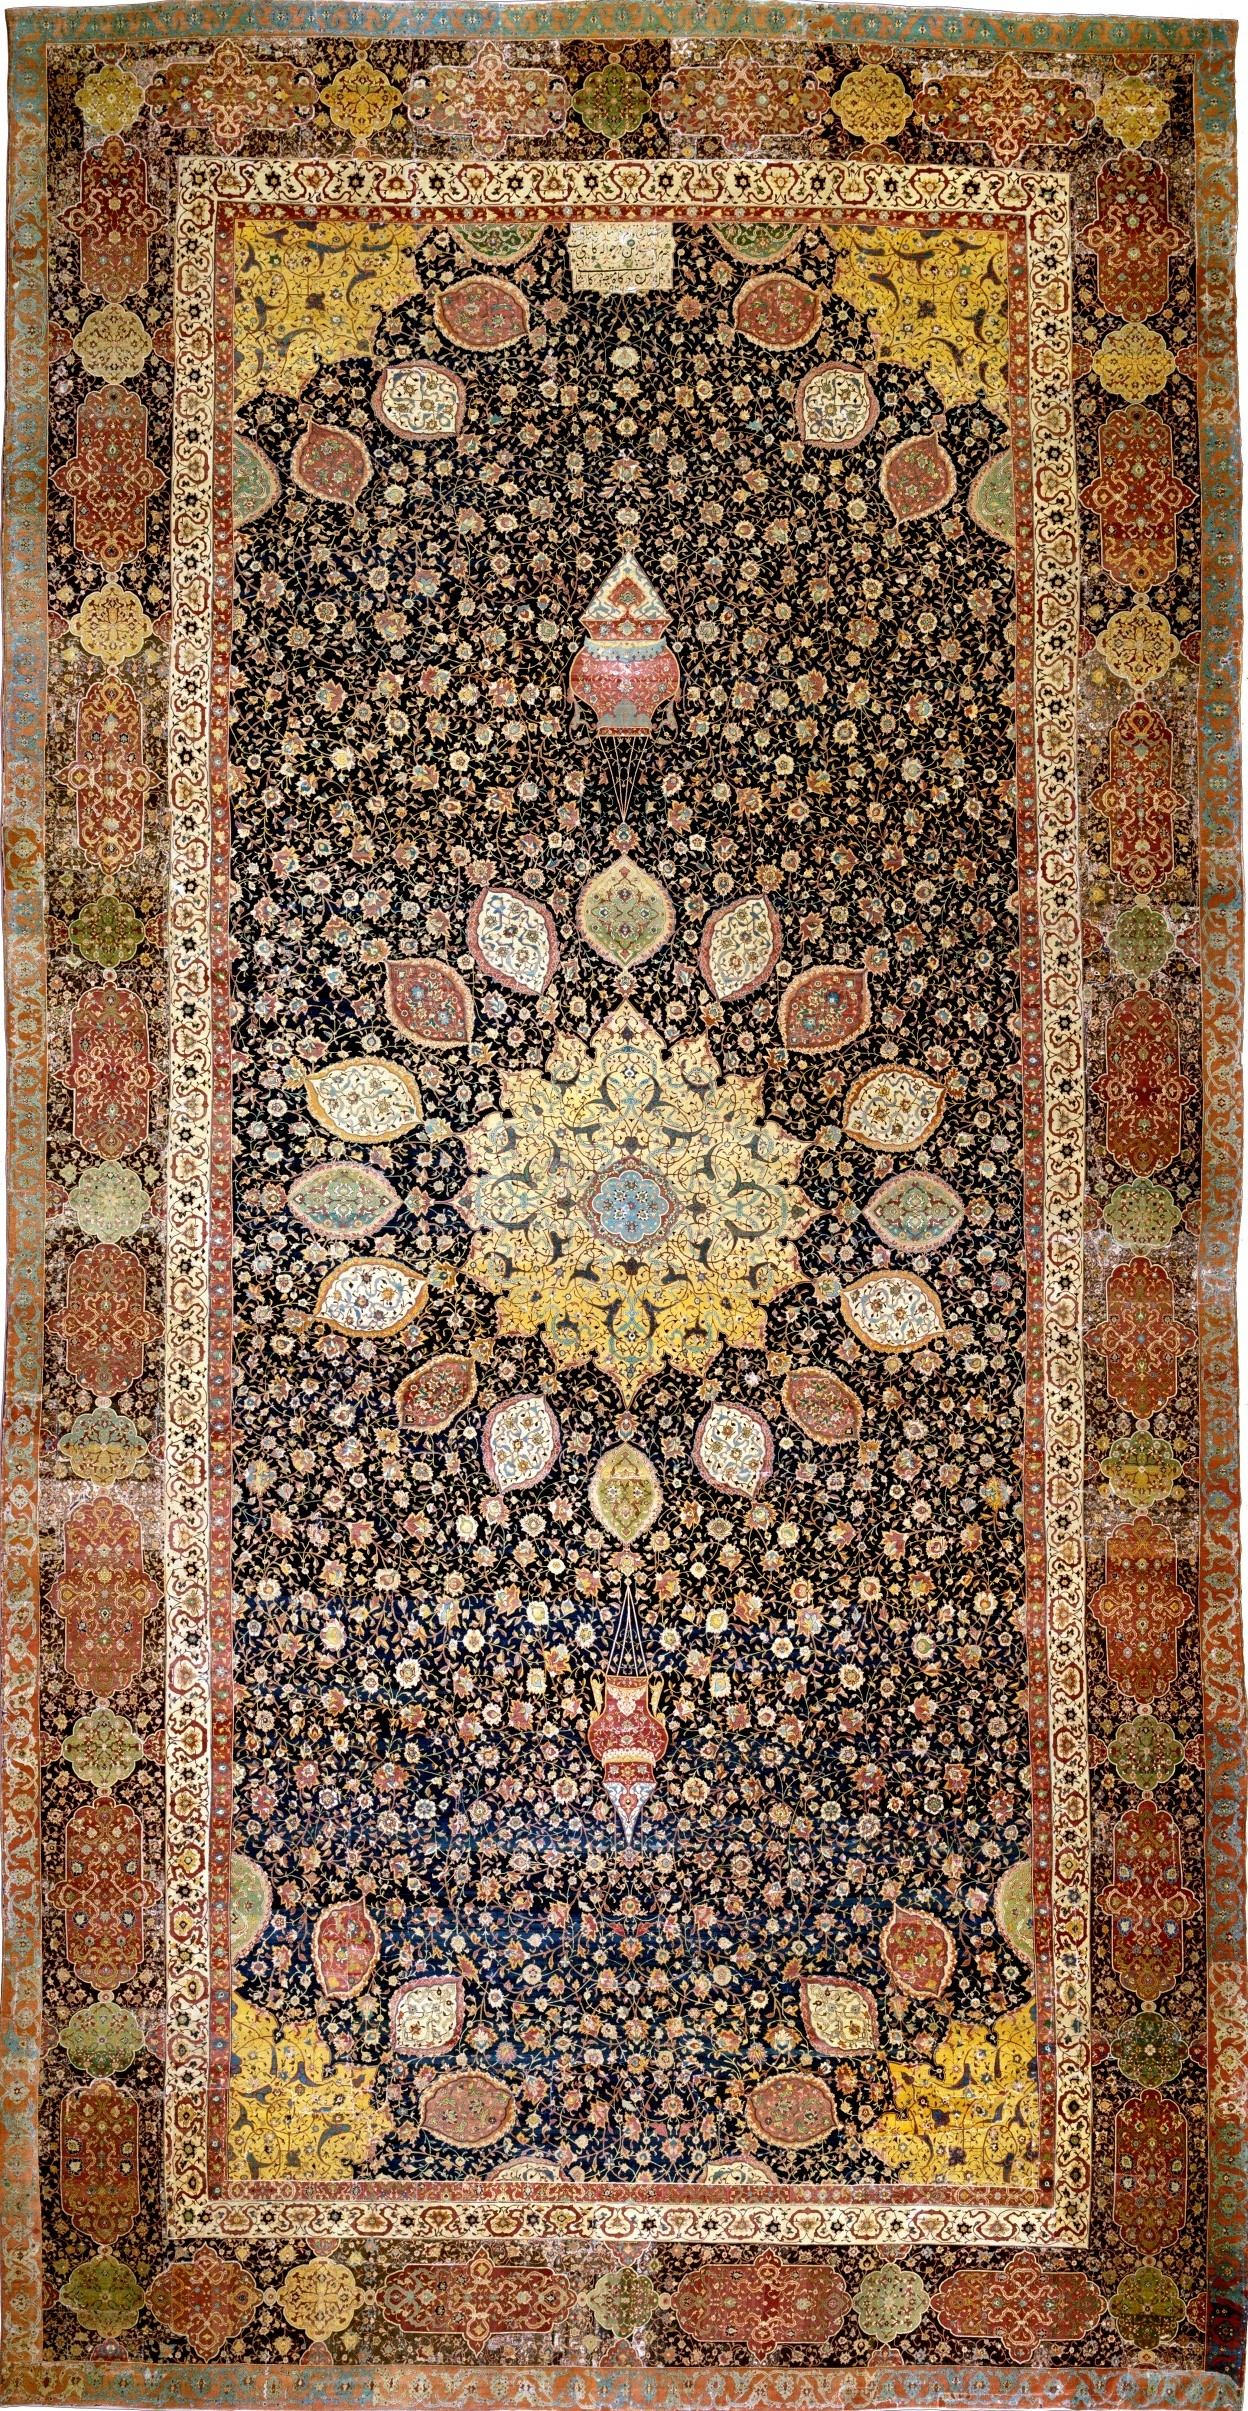 Persian Carpet Wikipedia Intended For Arabic Carpets (Image 14 of 15)